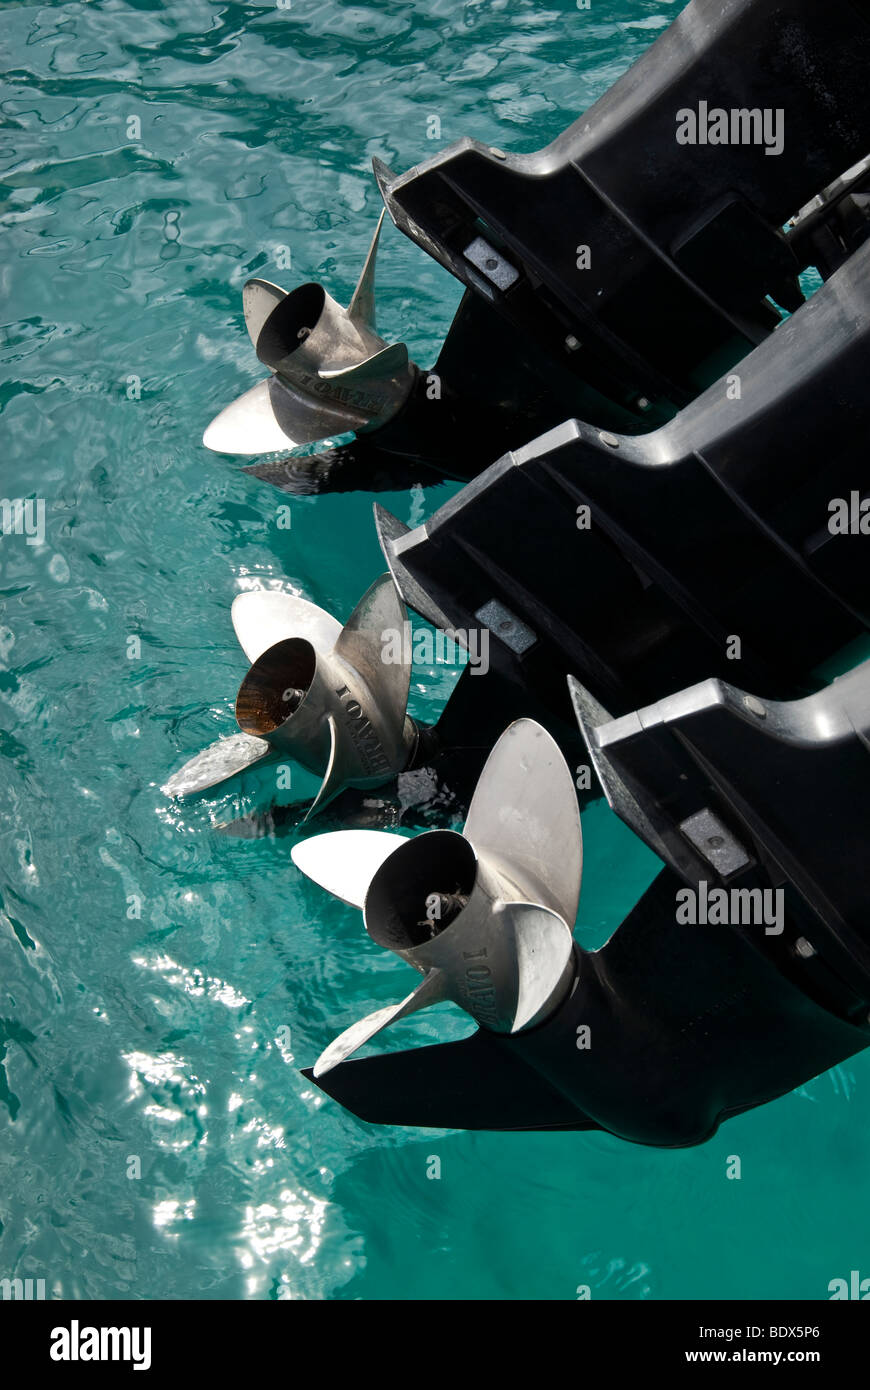 The propellers of a motor boat's outboard motor held out of the water - Stock Image